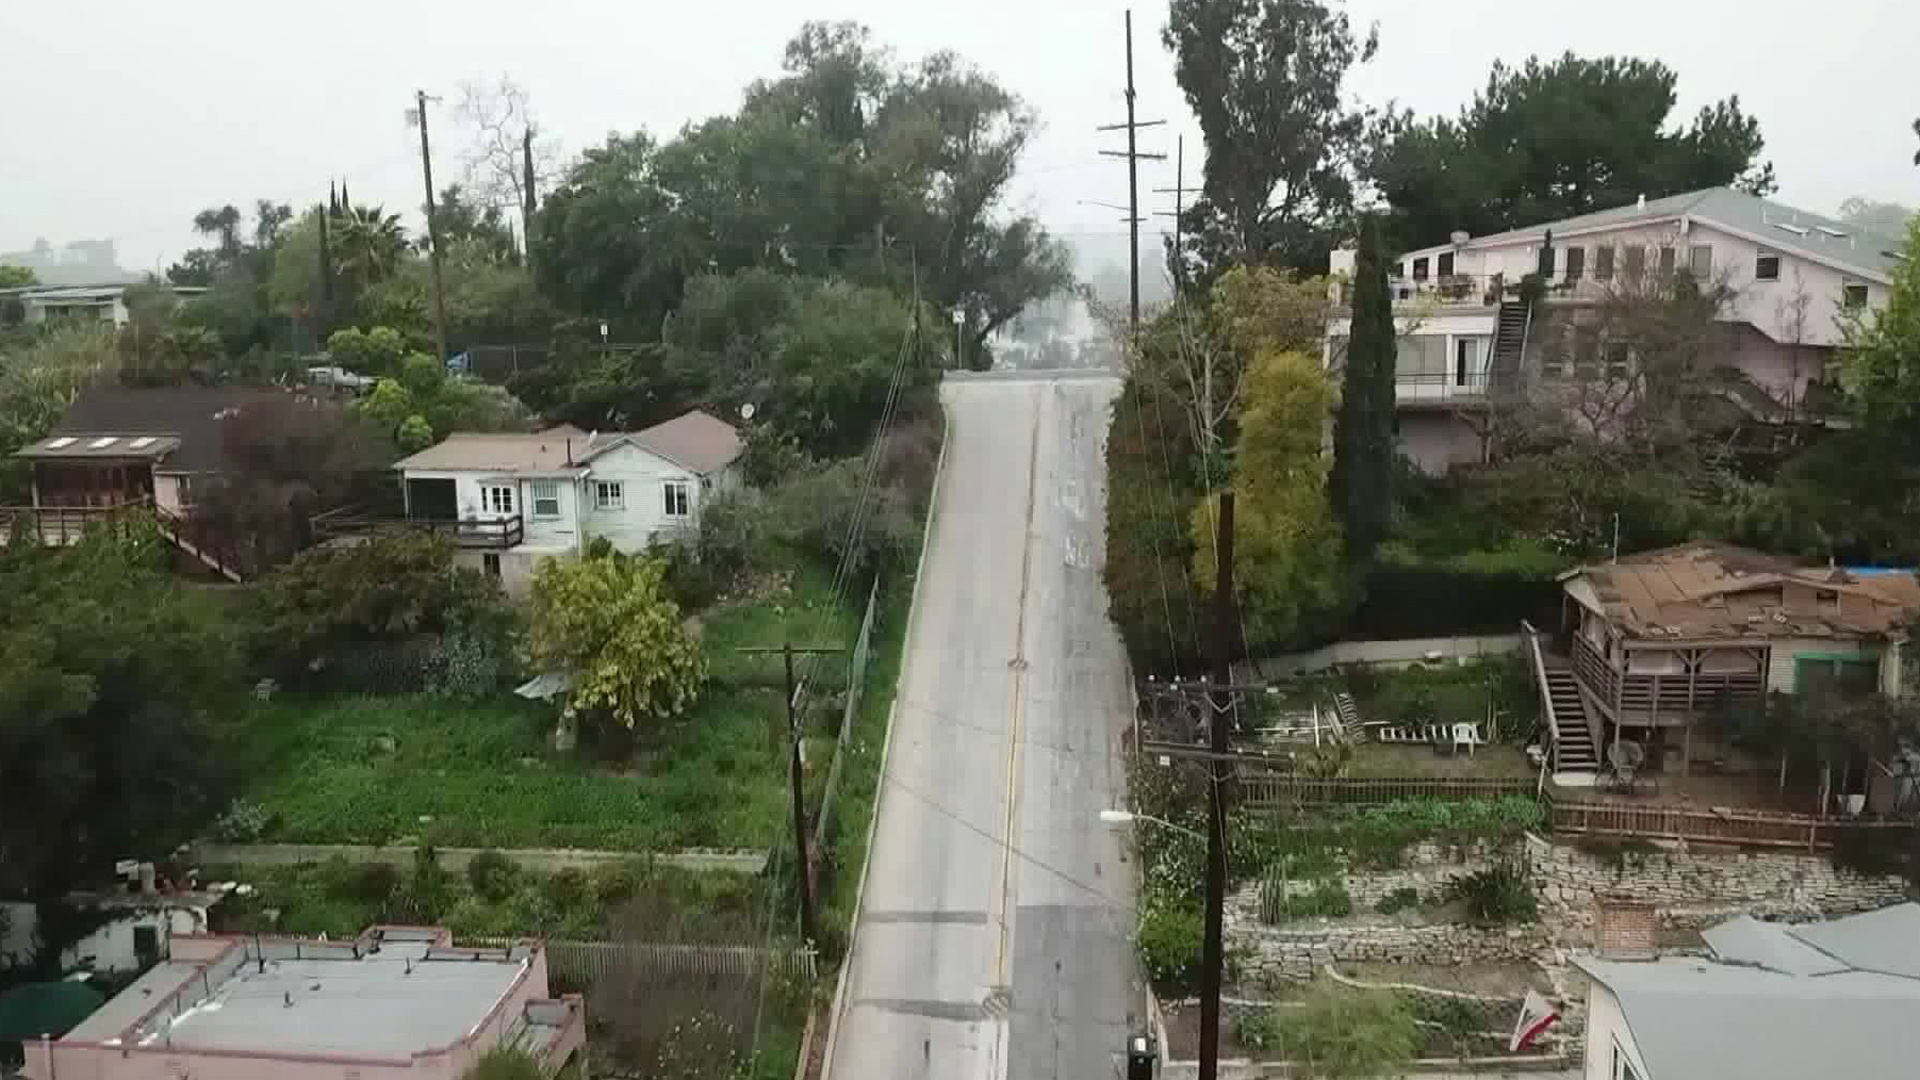 A section of Baxter Street in Echo Park, as seen in a still from Drone5.